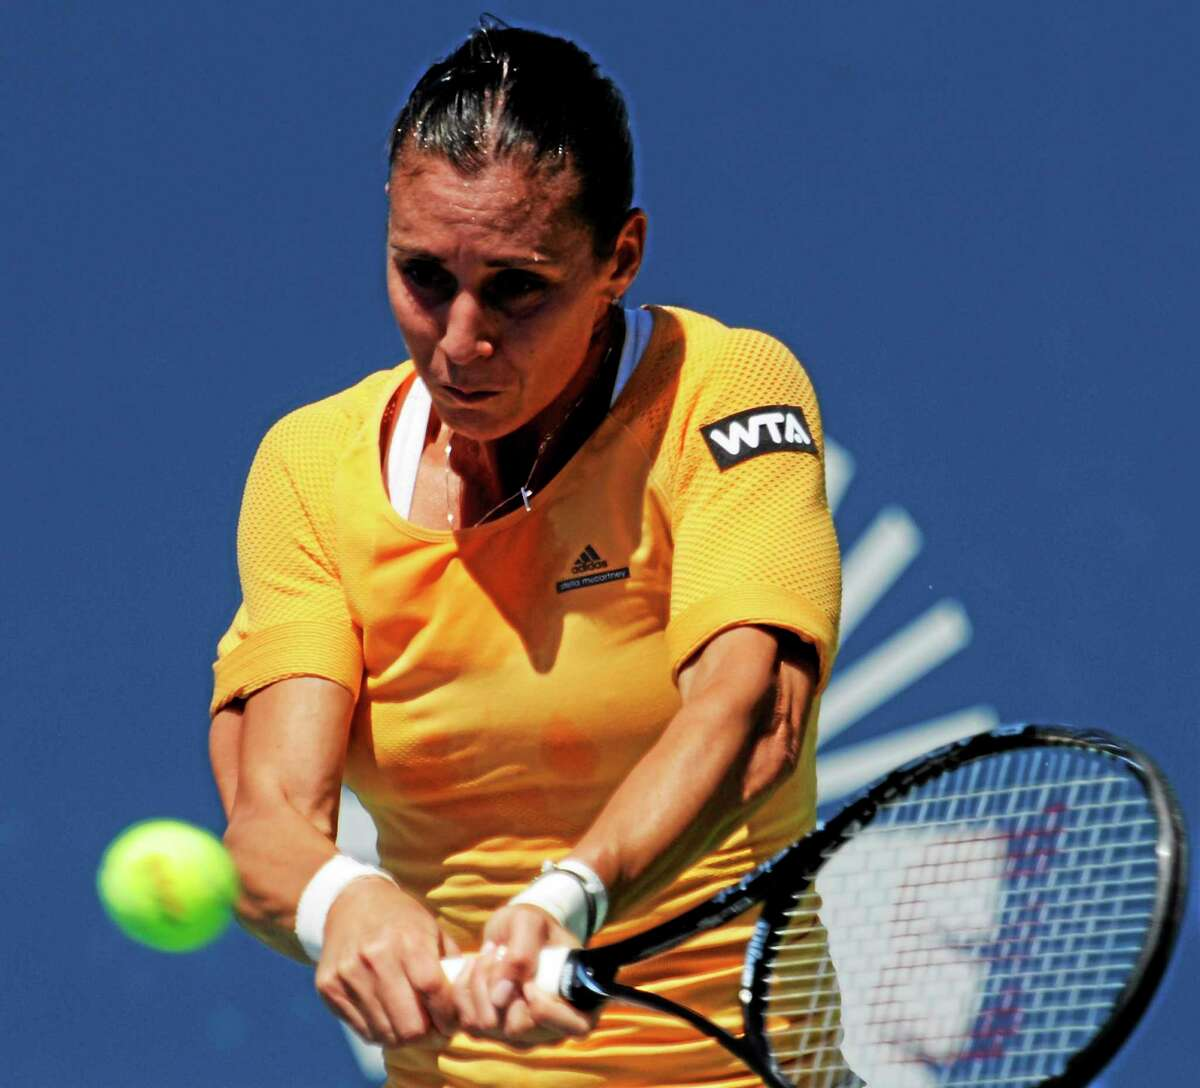 No. 6 Flavia Pennetta was upset by American Alison Riske 6-1, 7-6 (3) on Tuesday at the Connecticut Open at the Connecticut Tennis Center.